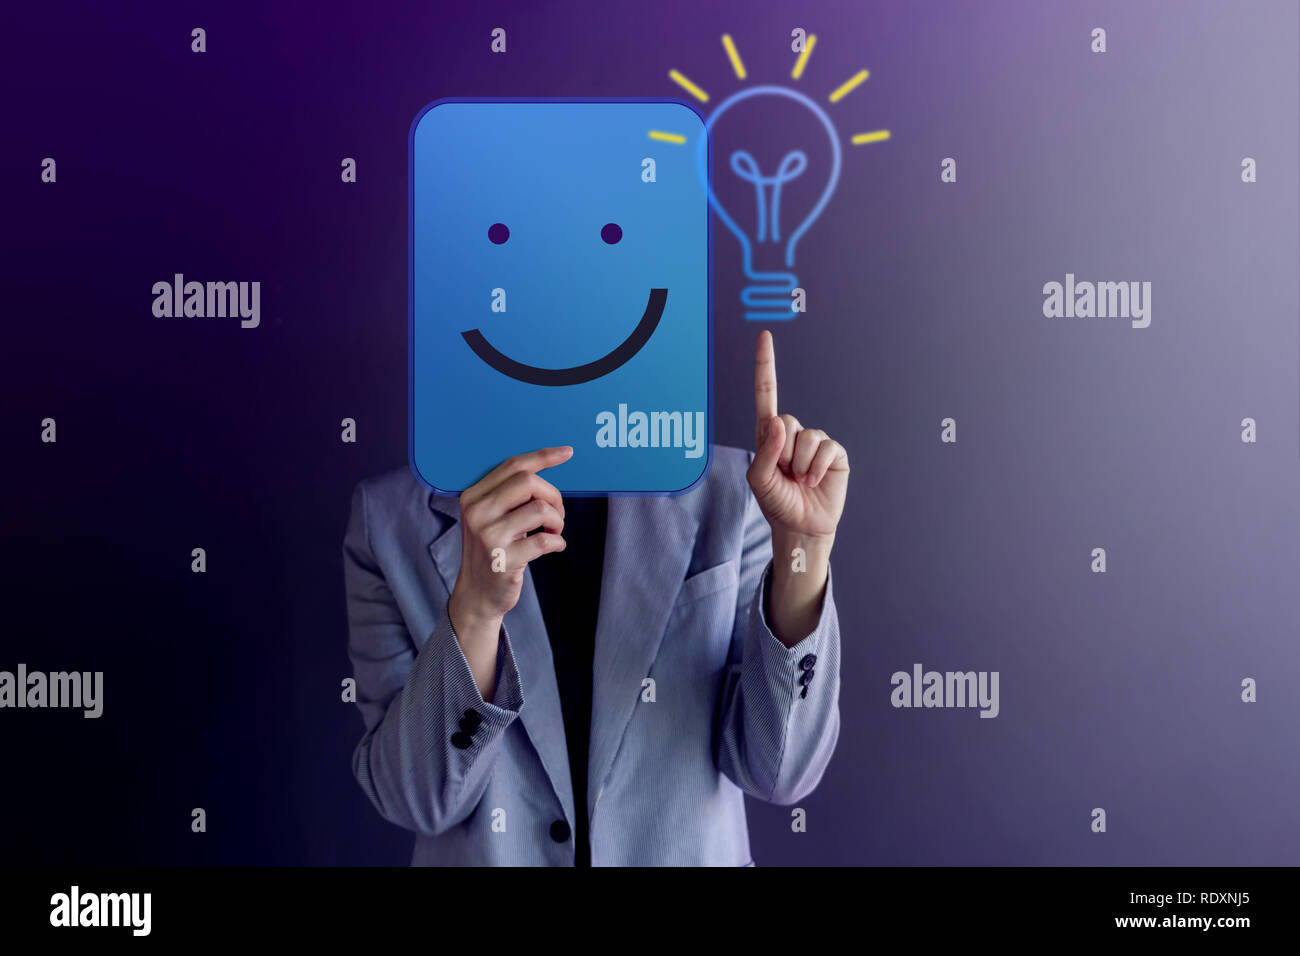 Ideas, Creativity and Innovation Concept. Happy Woman Covered her Face, presenting Smiling Face, LightBulb and Body Language by Finger Up - Stock Image